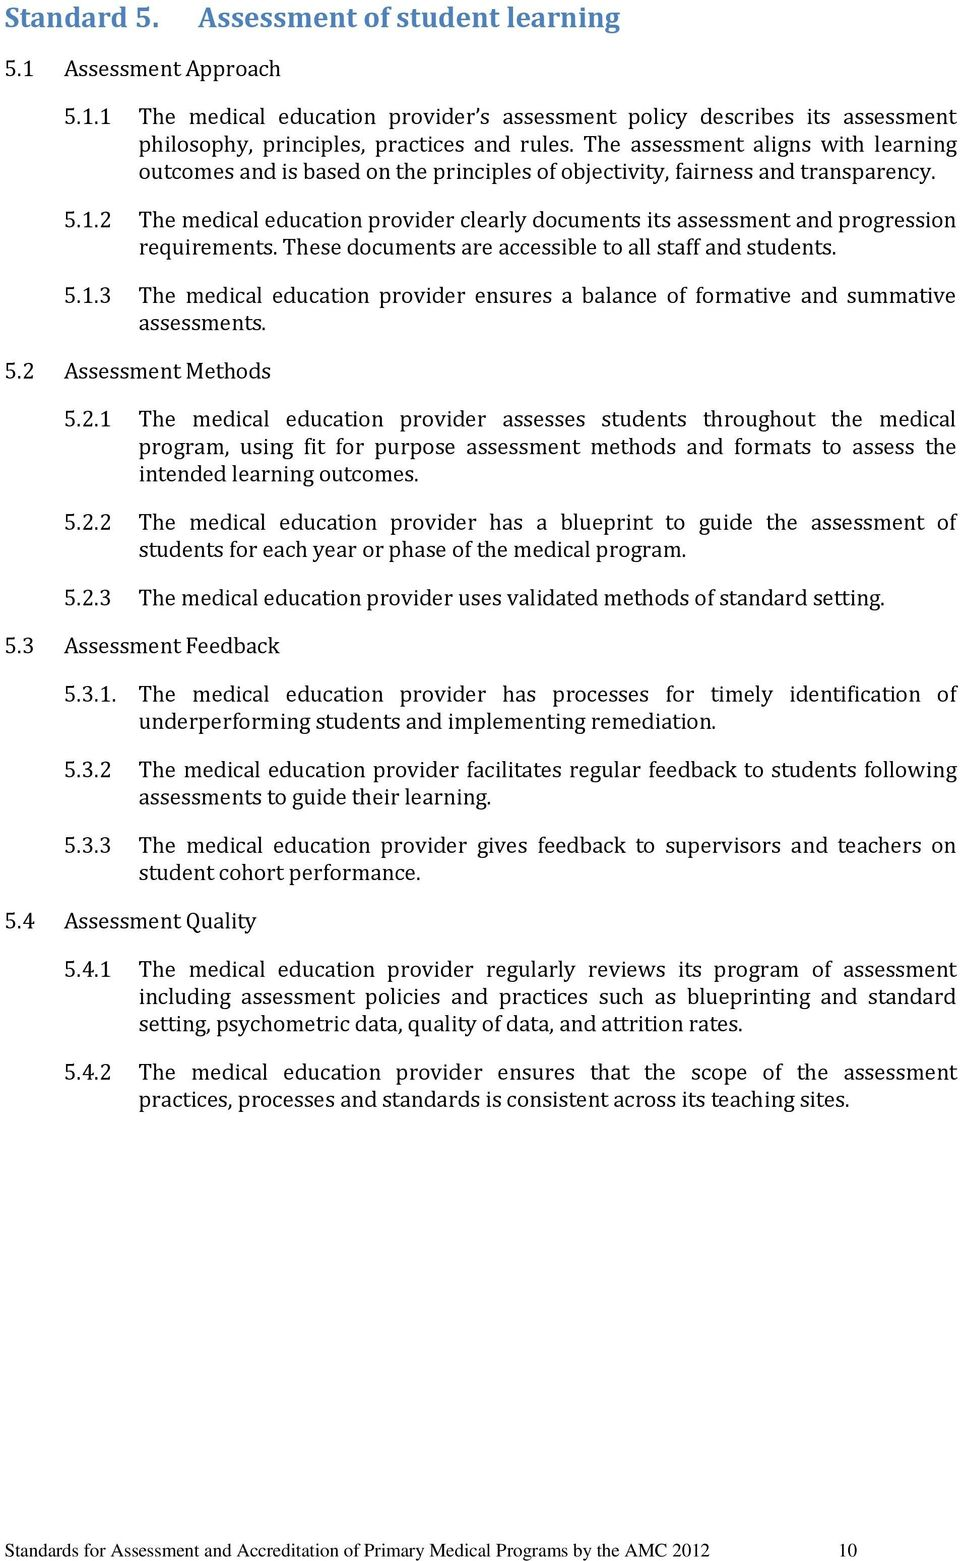 2 The medical education provider clearly documents its assessment and progression requirements. These documents are accessible to all staff and students. 5.1.